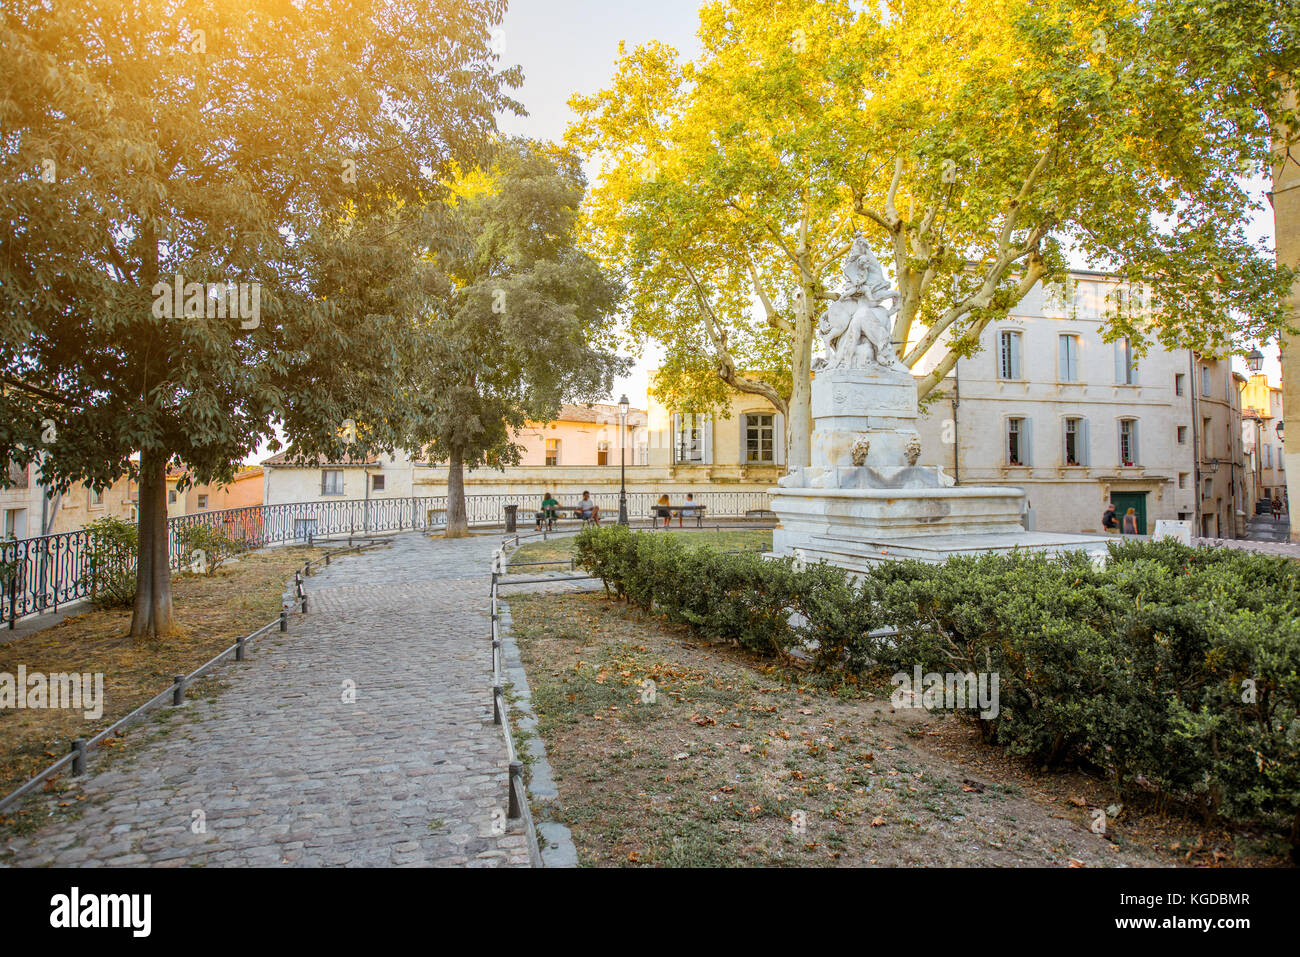 Montpellier city in France Stock Photo